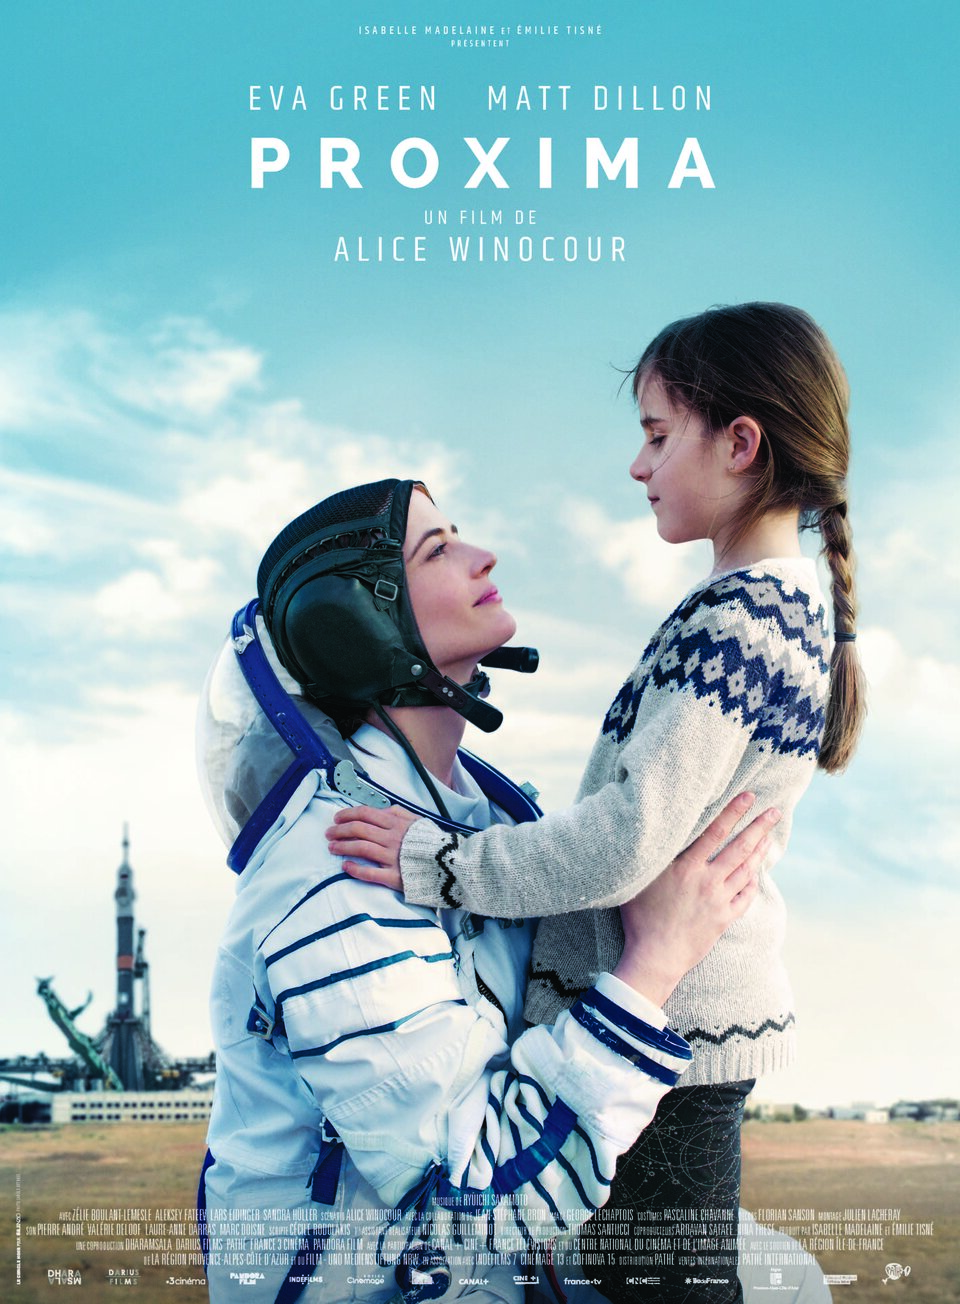 Proxima film promotional poster